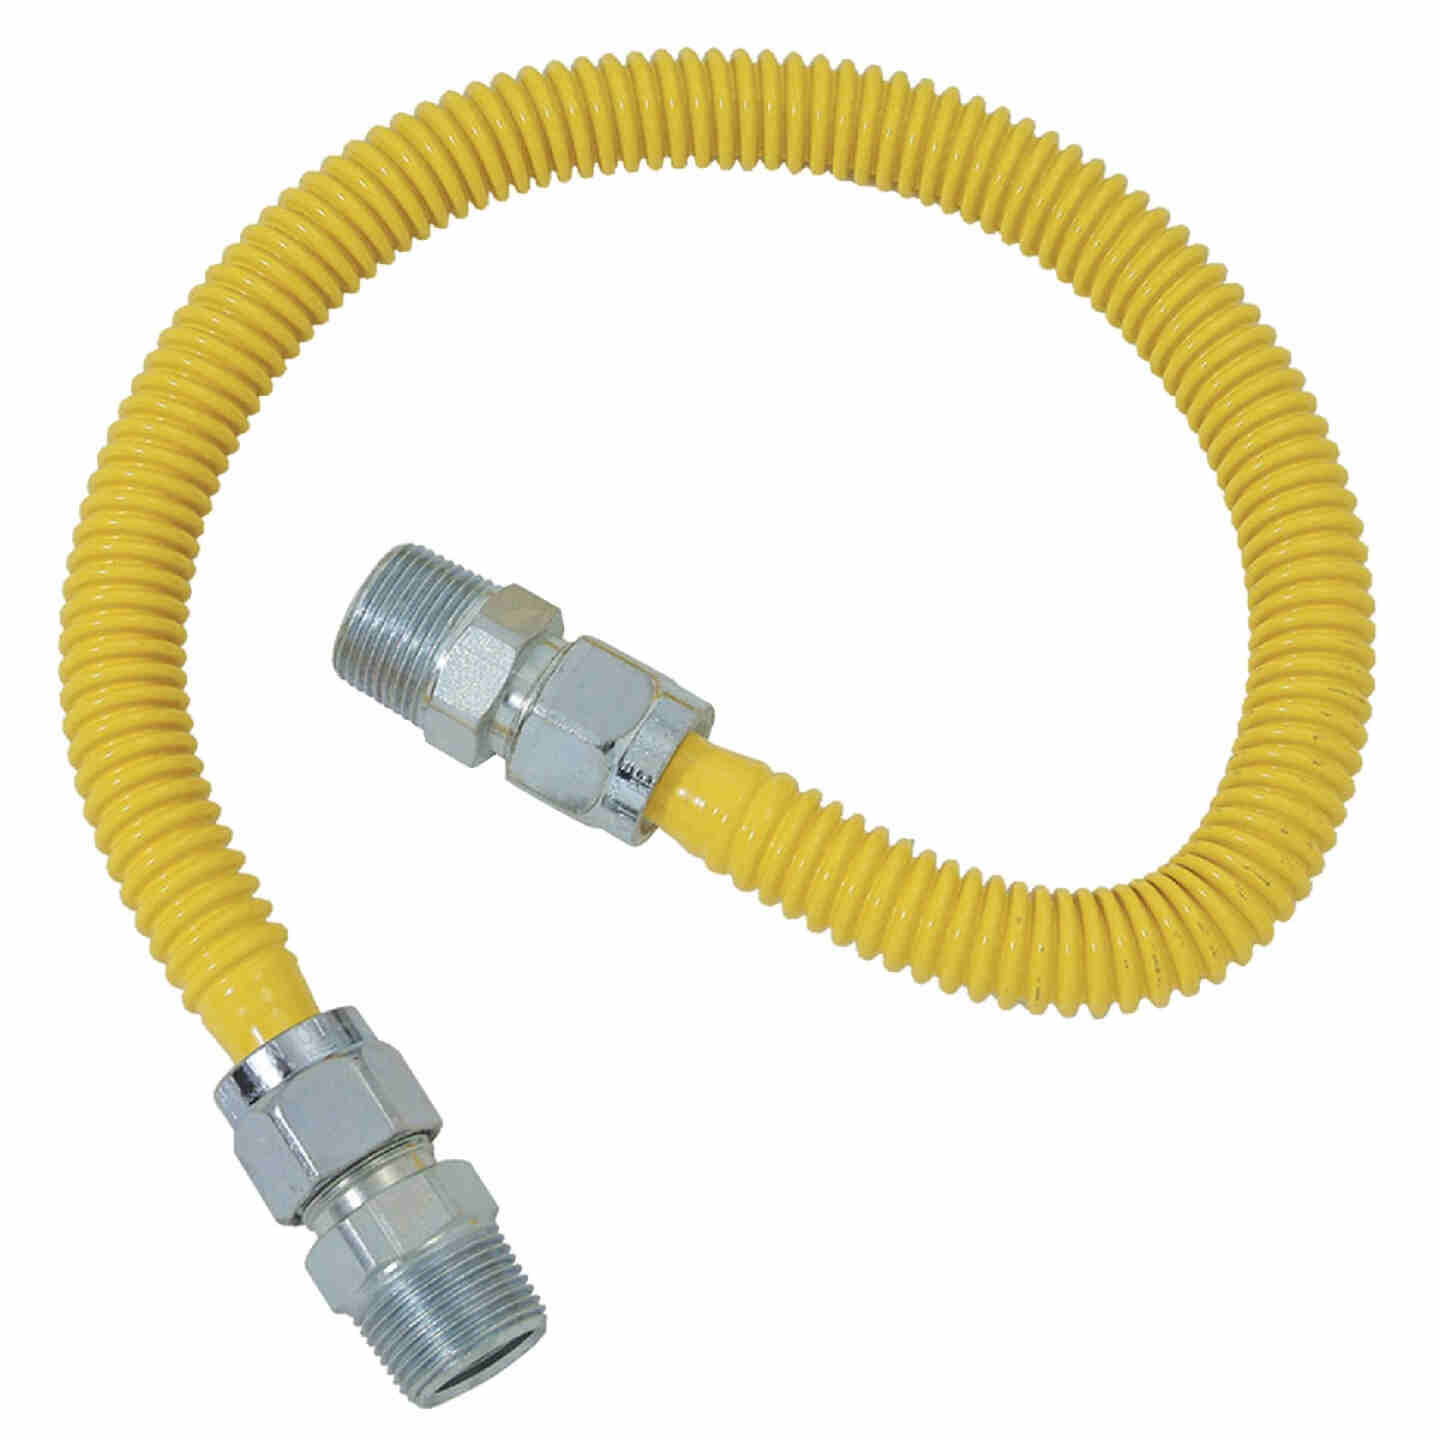 Dormont 5/8 In. OD x 48 In. Coated Stainless Steel Gas Connector, 1/2 In. MIP (Tapped 3/8 In. FIP) x 1/2 In. MIP (Tapped 3/8 In. FIP) Image 1